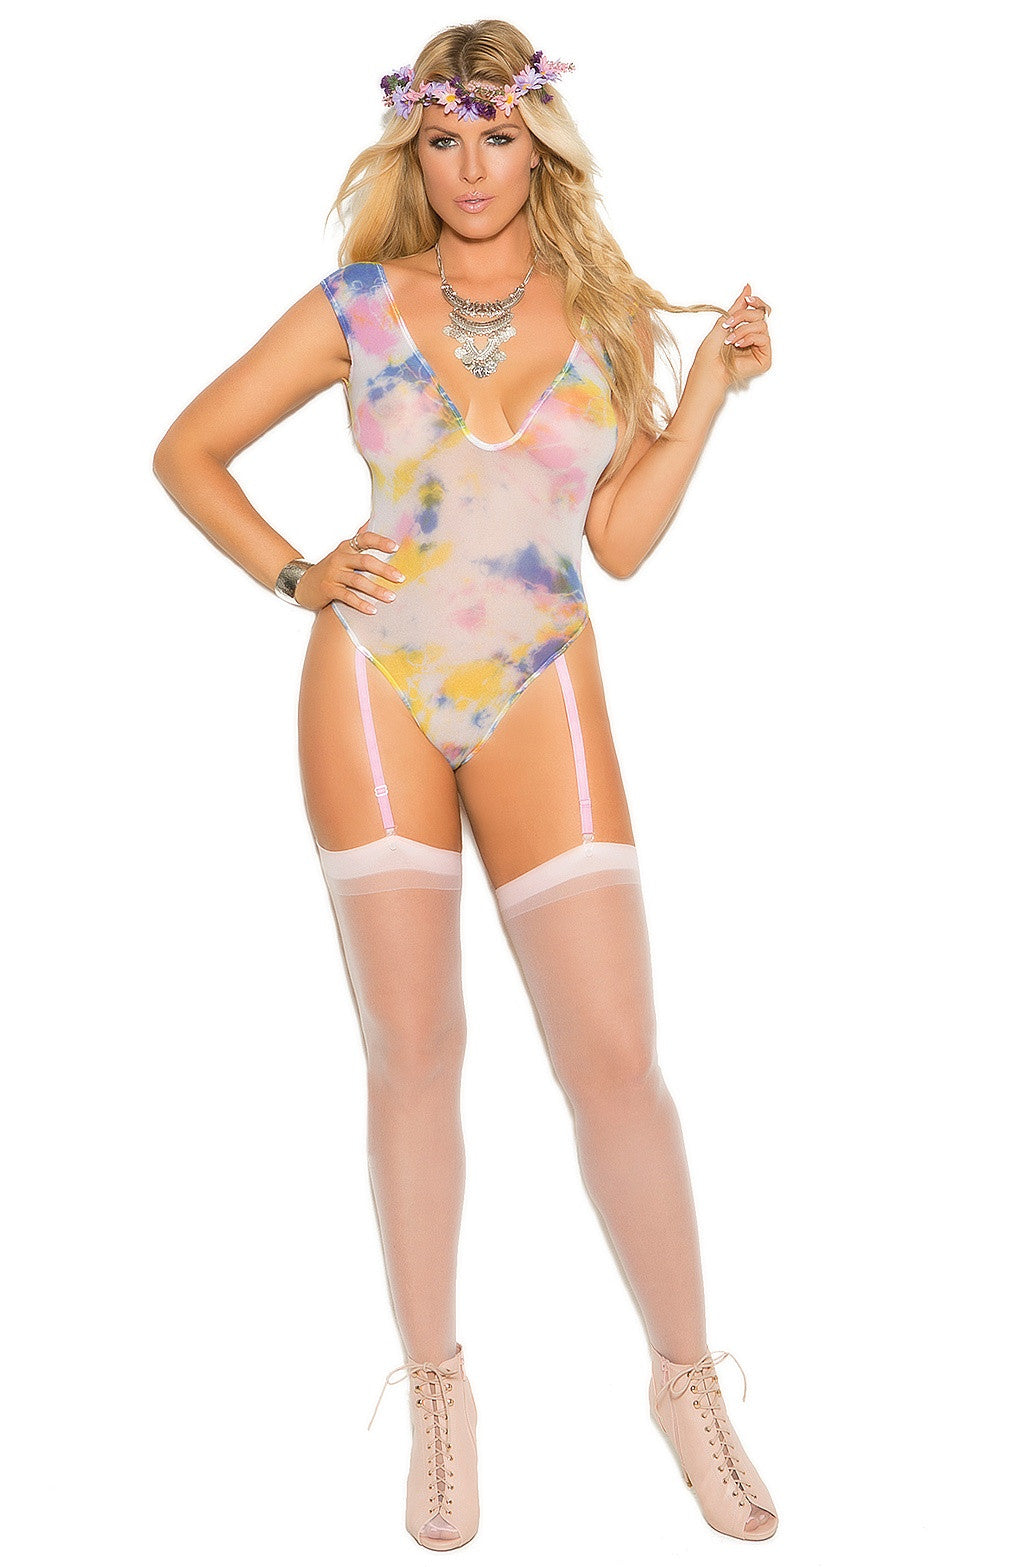 EM-82021 Sexy colorful teddy - Sexylingerieland